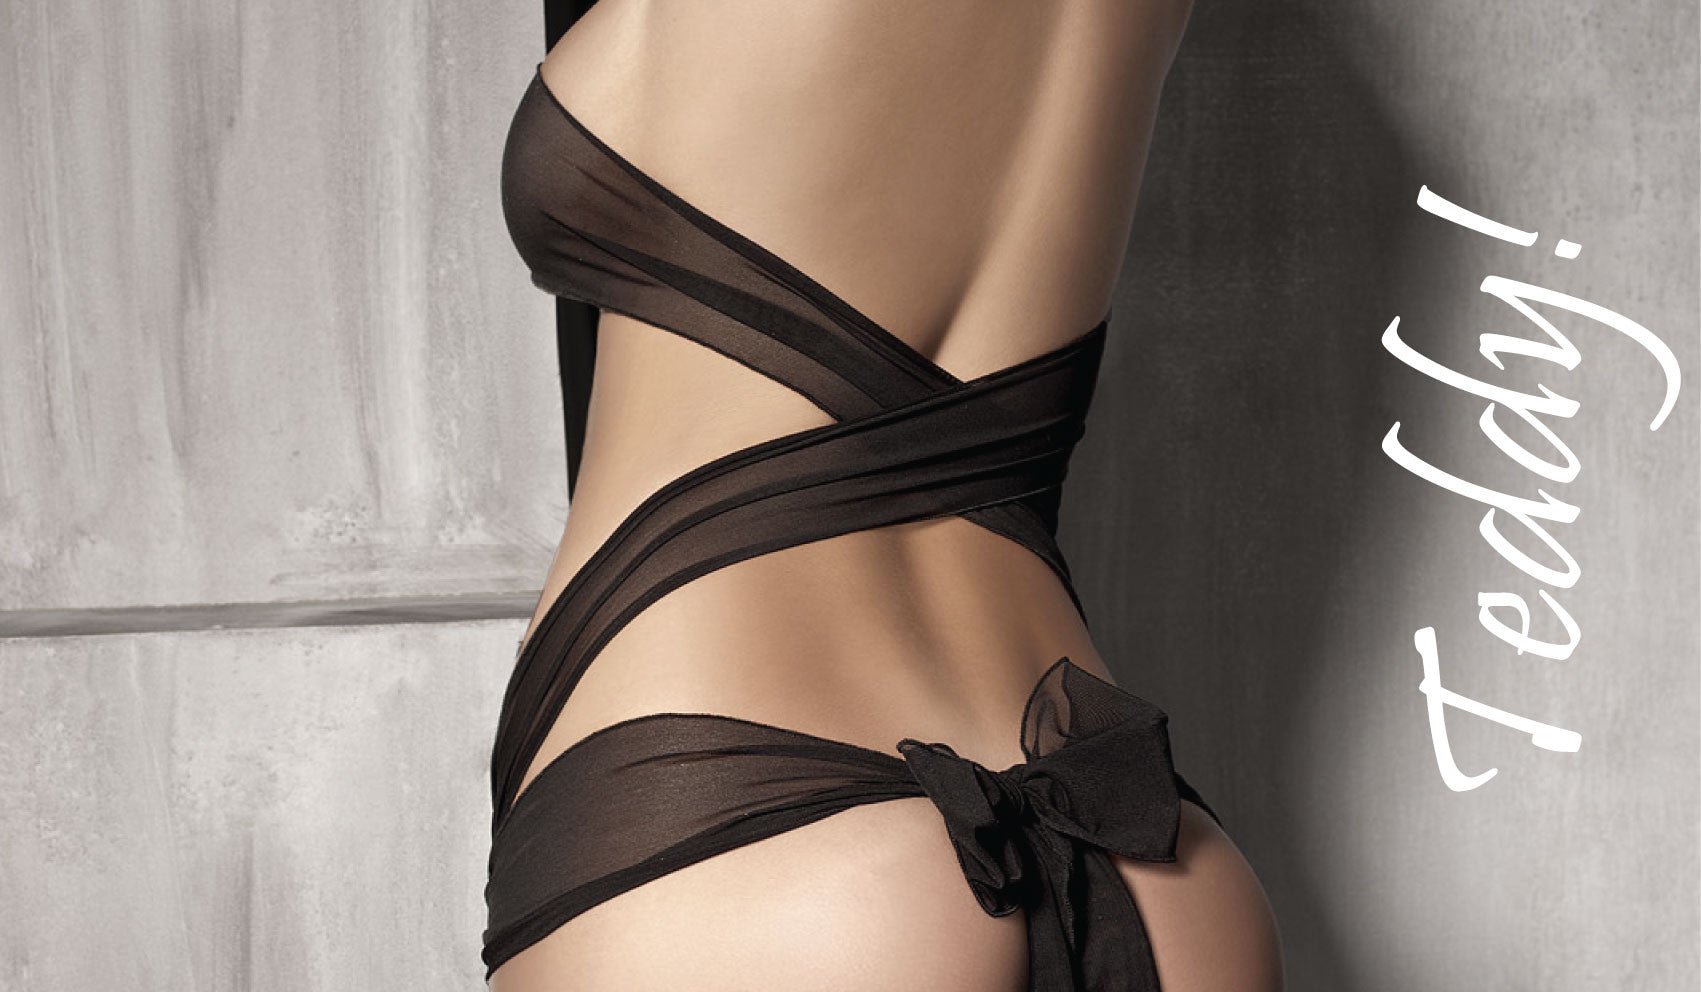 Kiss Kate's Teddy collection is playful and seductive that nicely exposes your body and womanly curves.